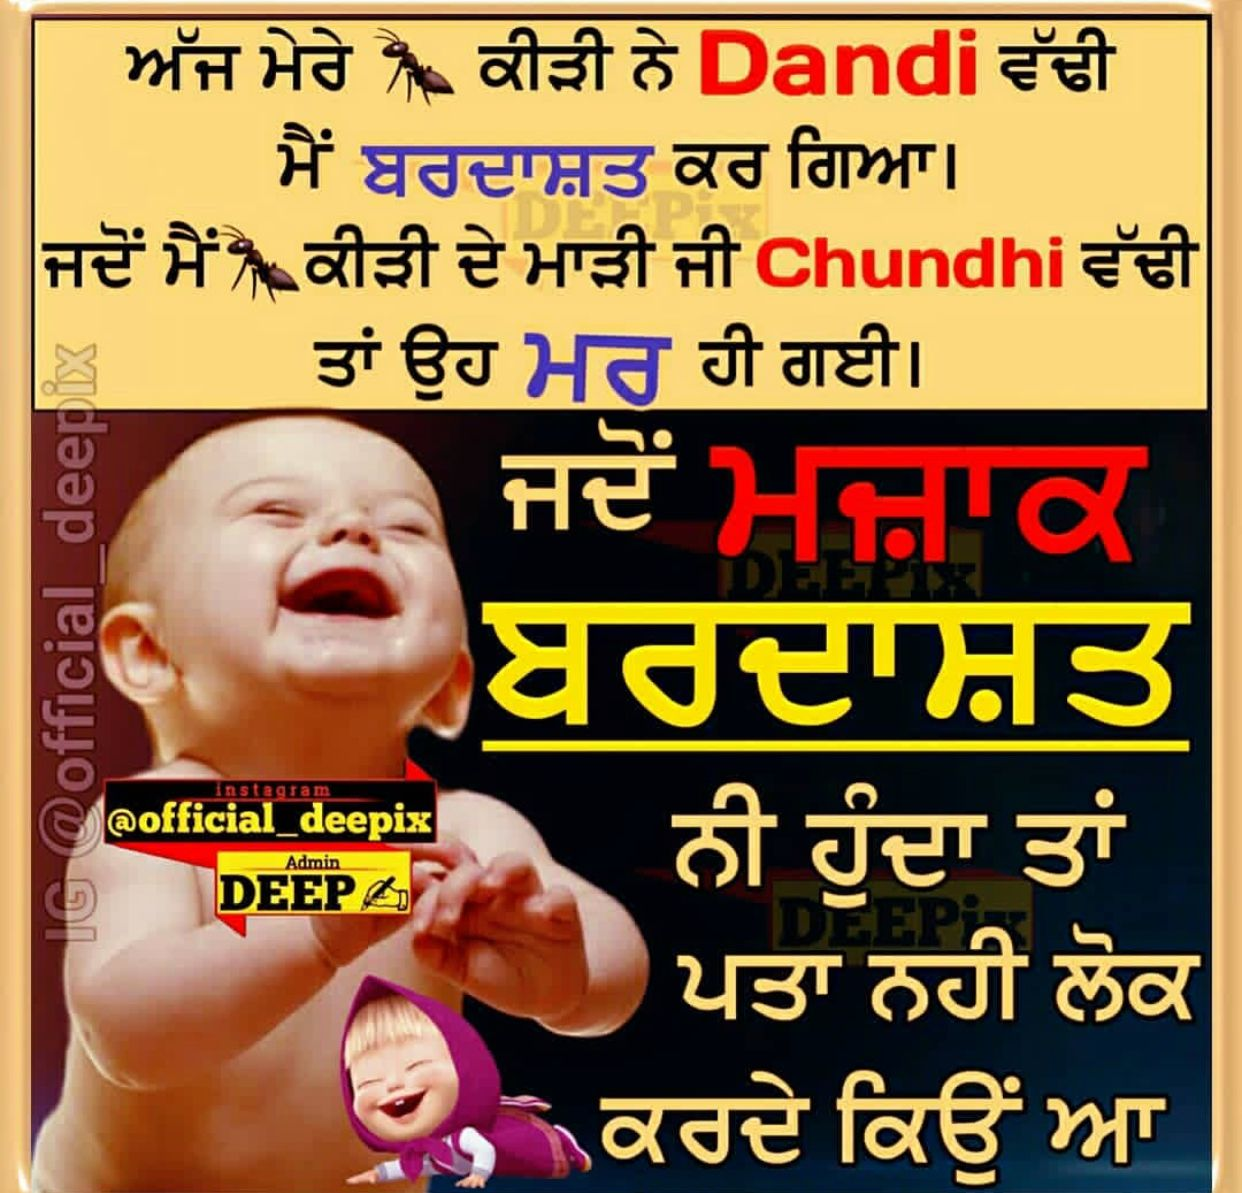 Pin By Reet Dhaliwal On Gallery Funny Quotes Fun Quotes Funny Punjabi Love Quotes